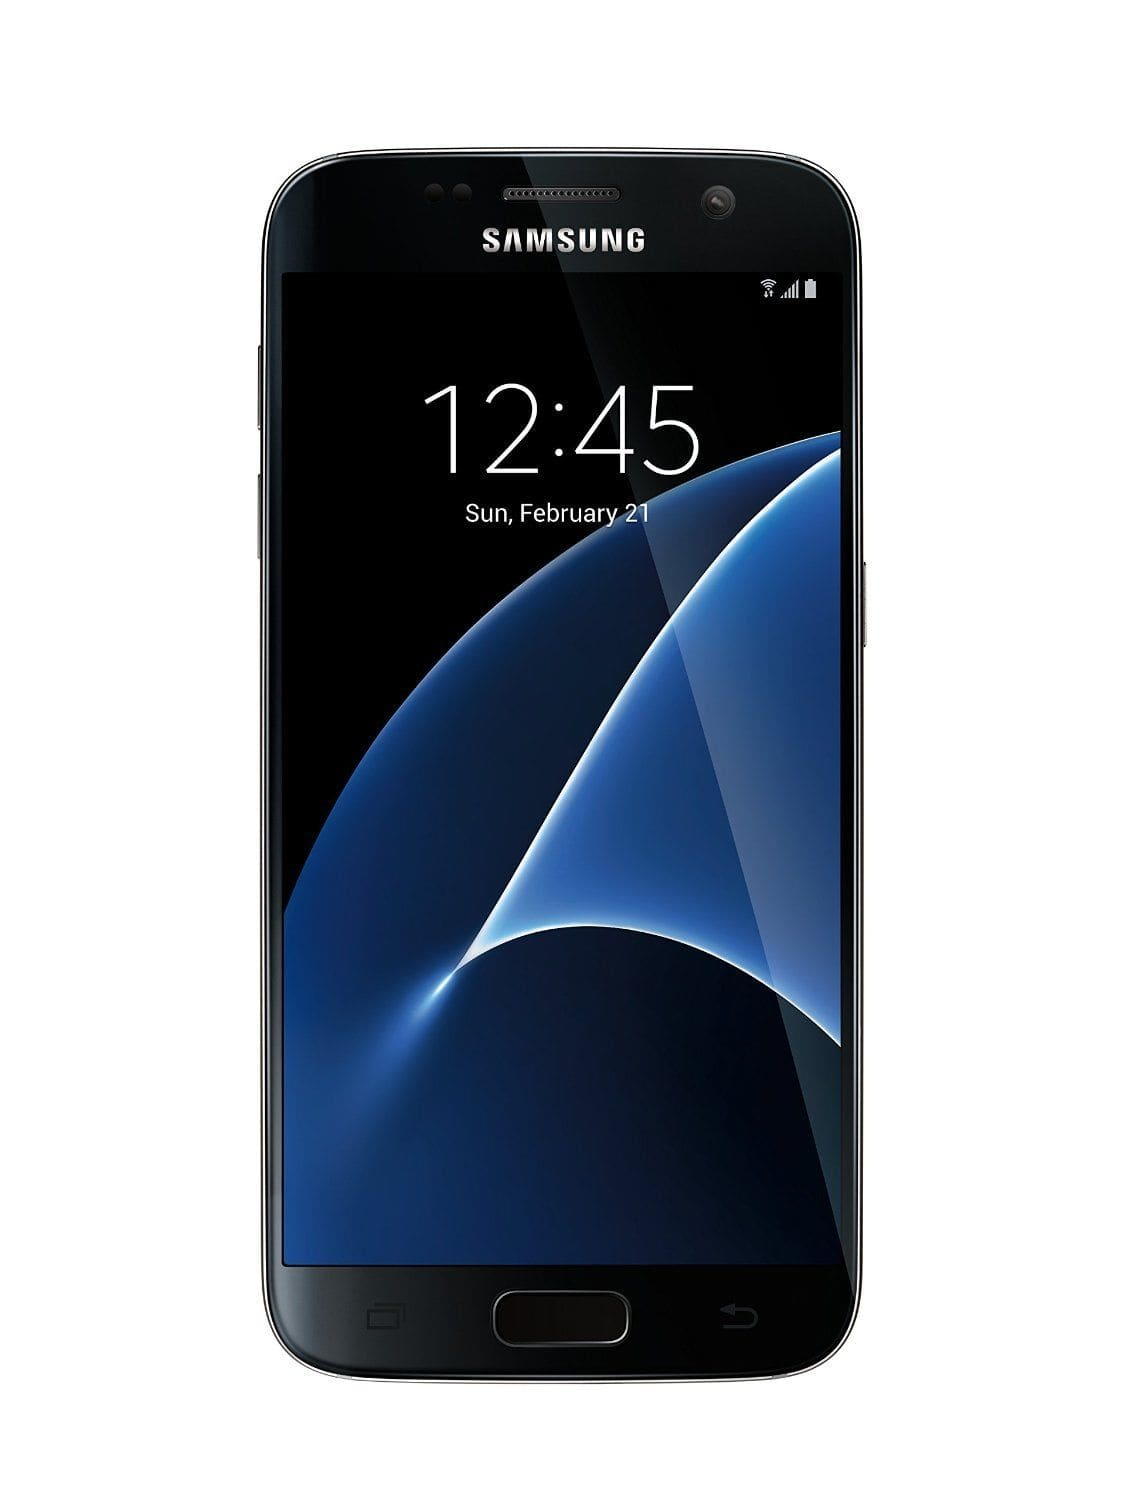 "Samsung Galaxy S7 Dual SIM 32GB Unlocked Smartphone 5.1"" AMOLED Display $530 + Free Shipping! (eBay Daily Deal)"